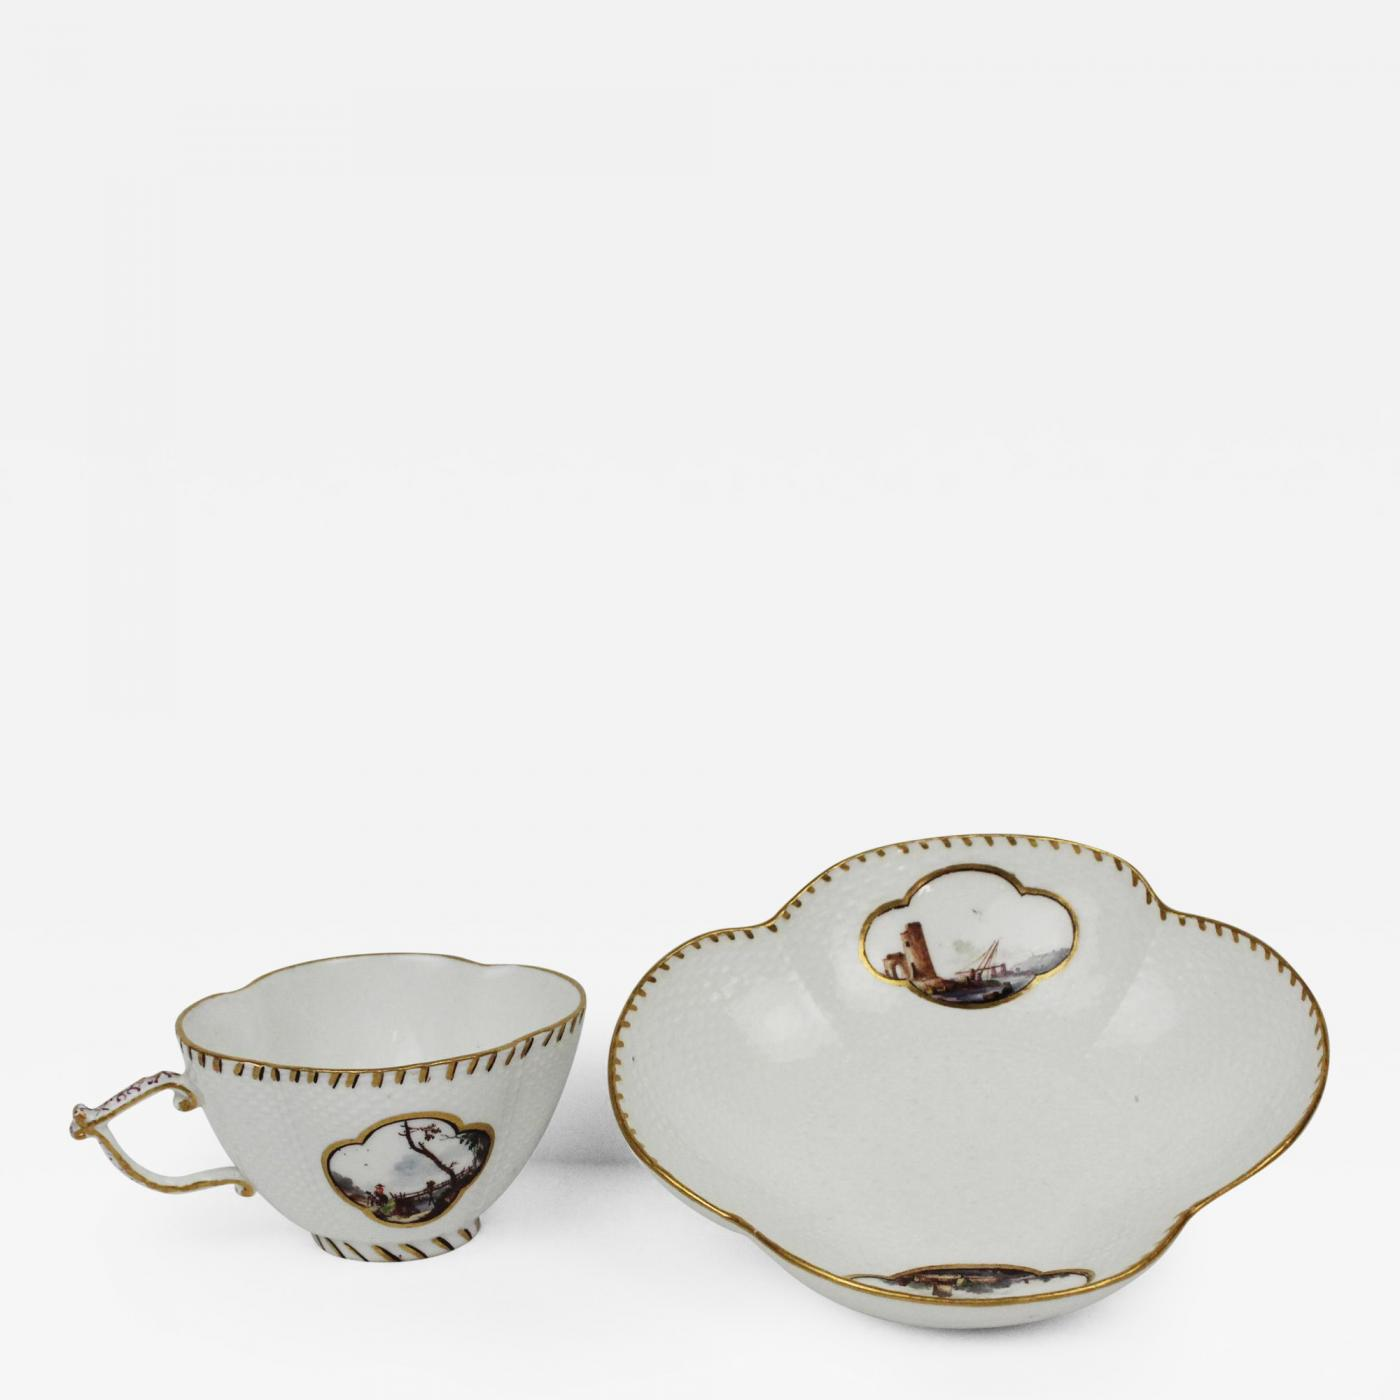 Listings / Decorative Arts / Tablewares / Drinking Vessels  sc 1 st  Incollect & Meissen - Porcelain Quatrefoil Cup and Saucer Circa 1735